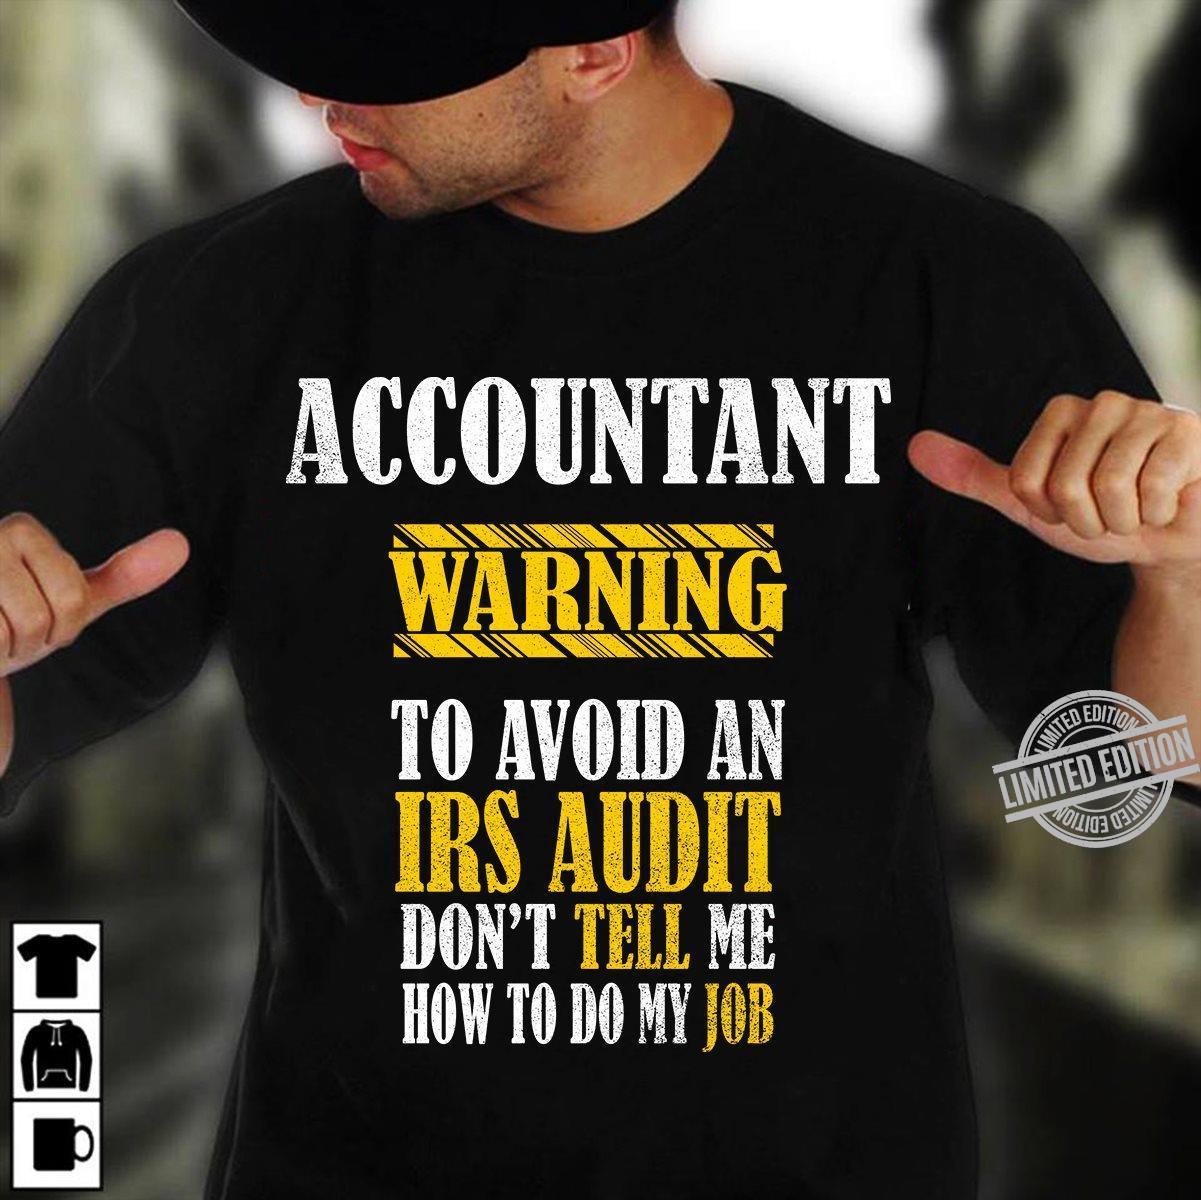 Accountant Warning To Avoid An Irs Audit Don't Tell Me How To Do My Job Shirt